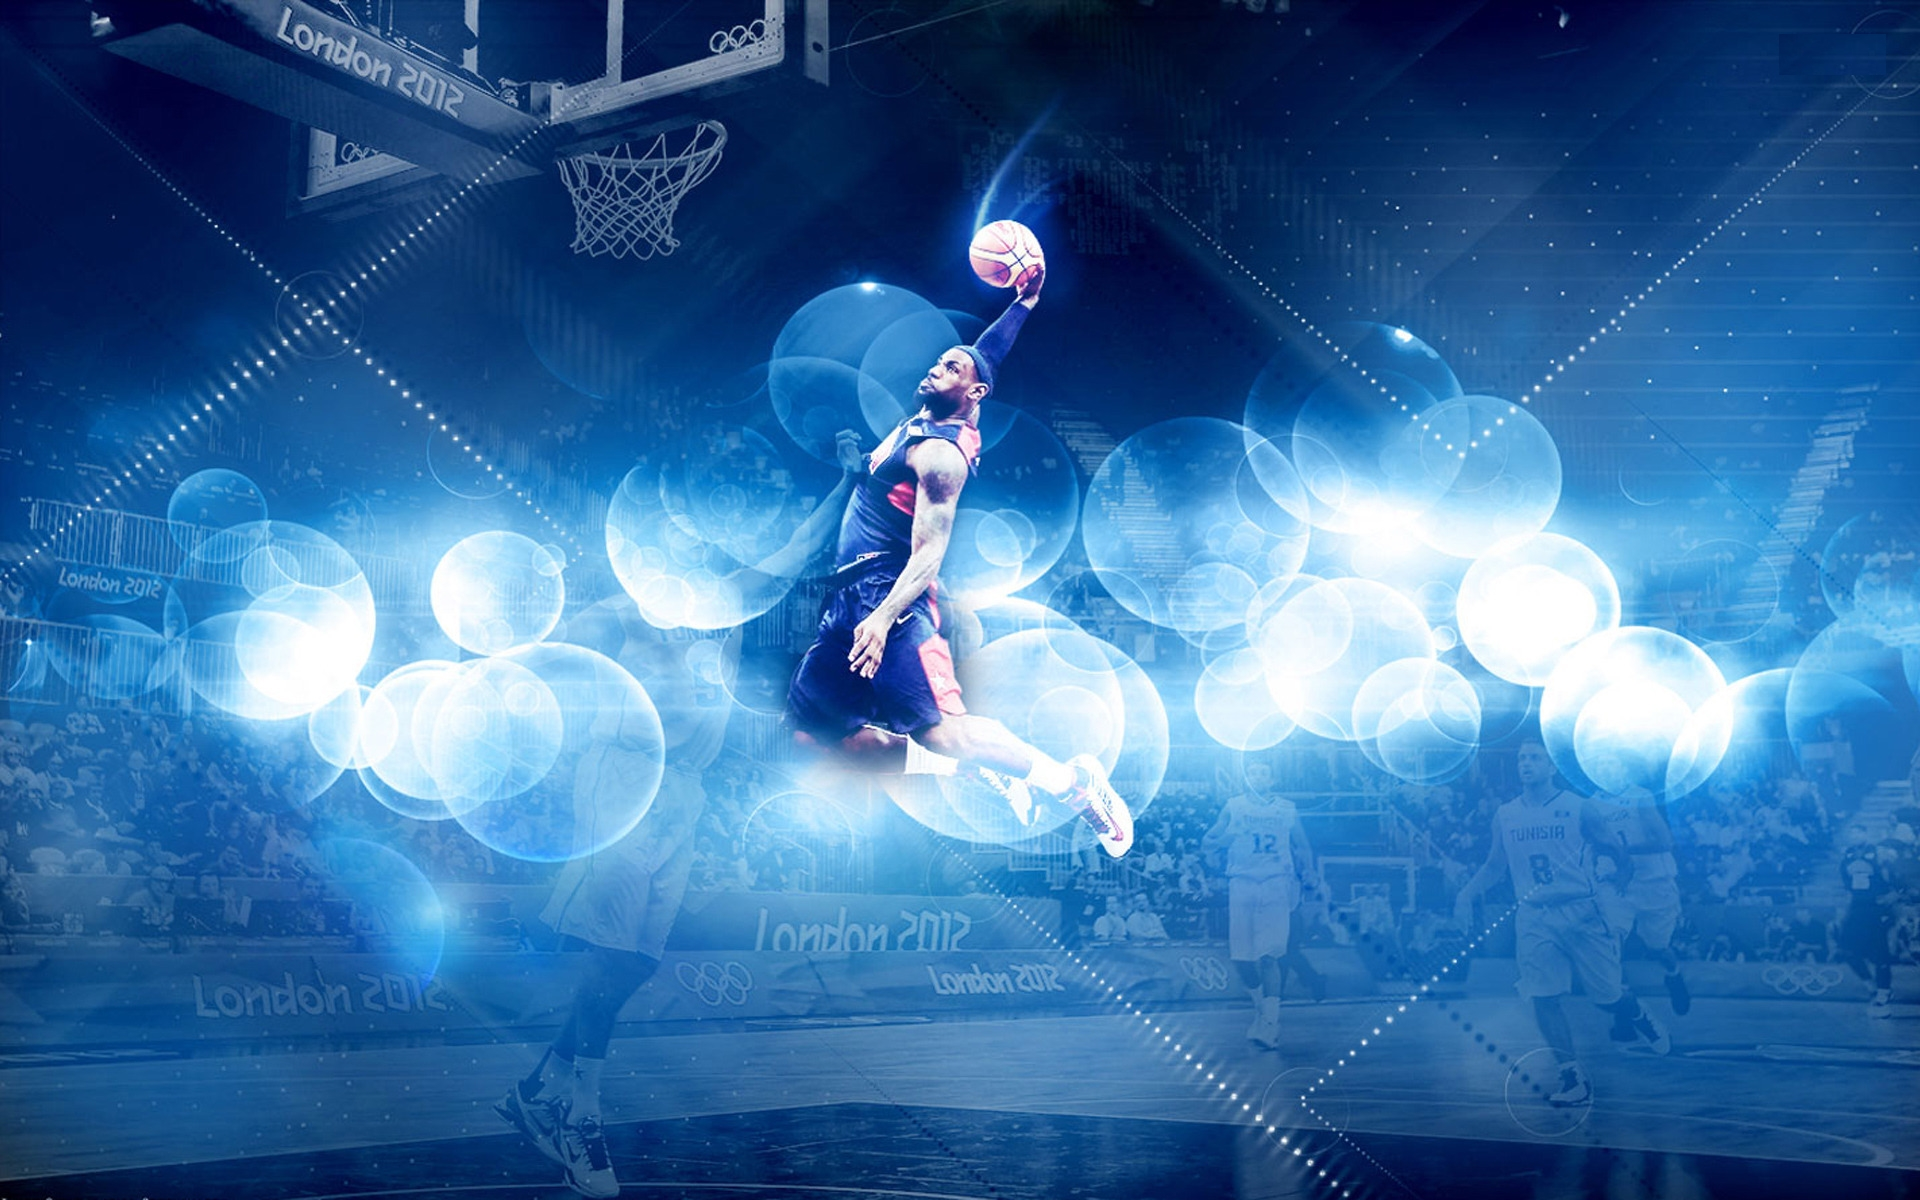 LeBron James Wallpaper 2